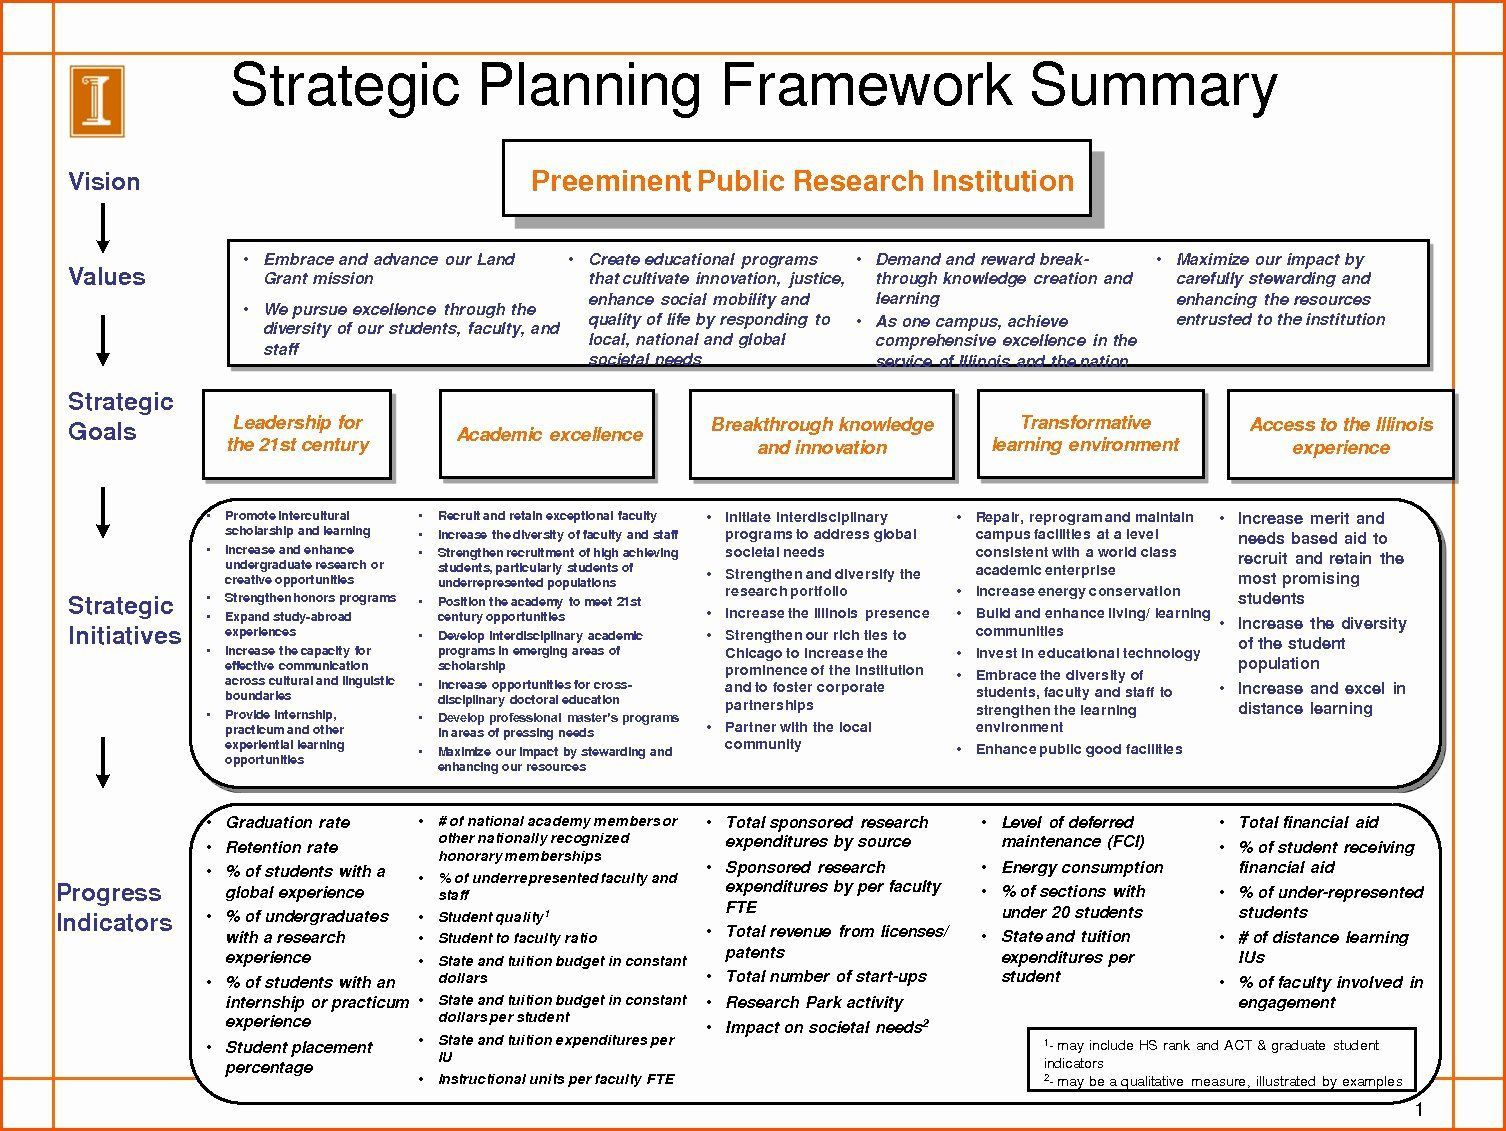 004 Exceptional Strategic Plan Outline Template Example  MarketingFull